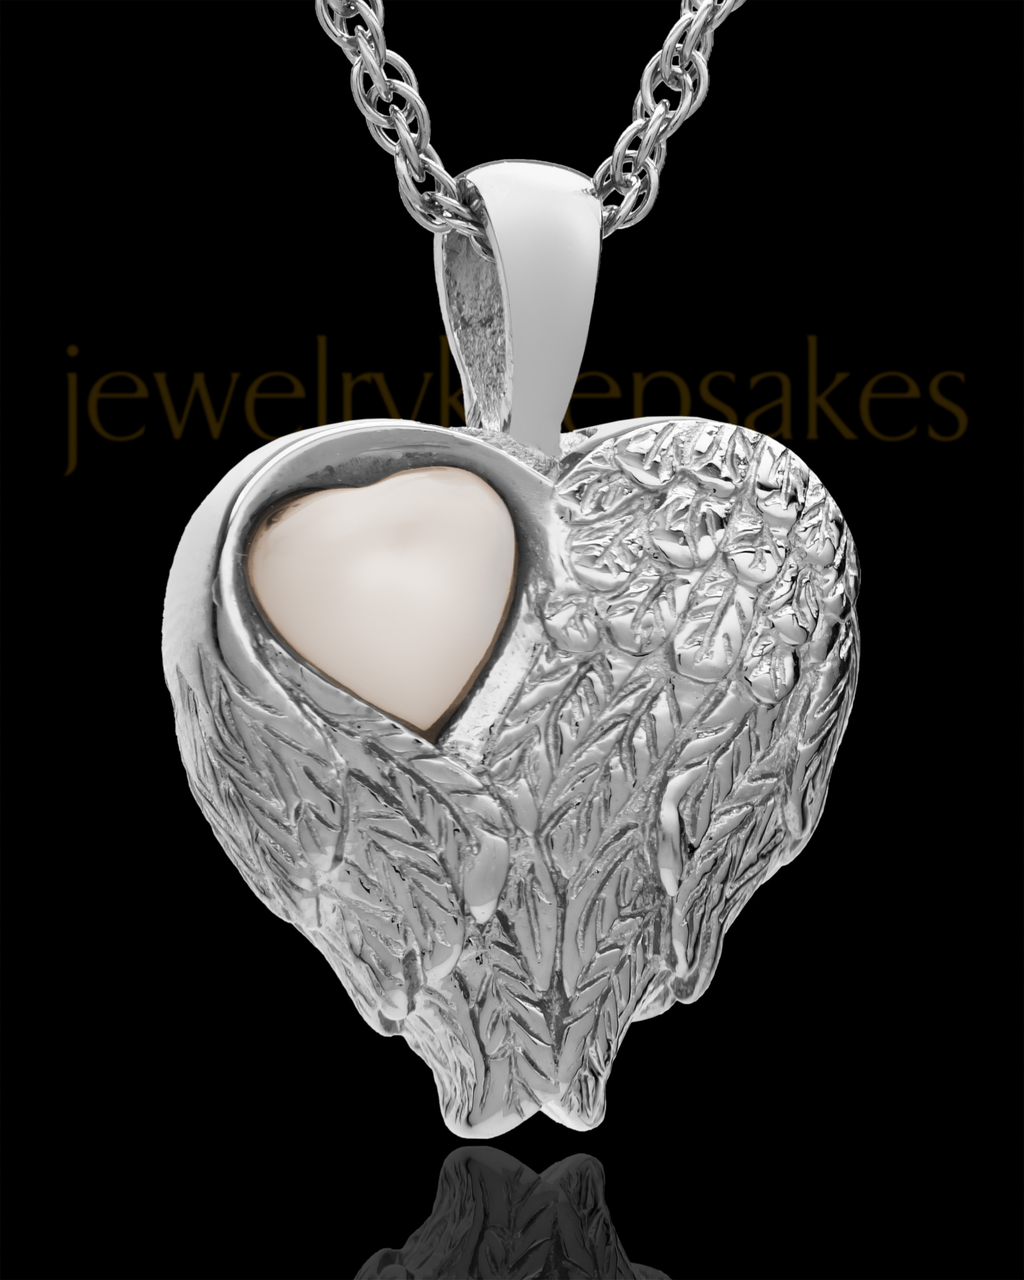 544dc47c45e4 Silver Forever Loved Heart cremation urn necklace and heart keepsake ...